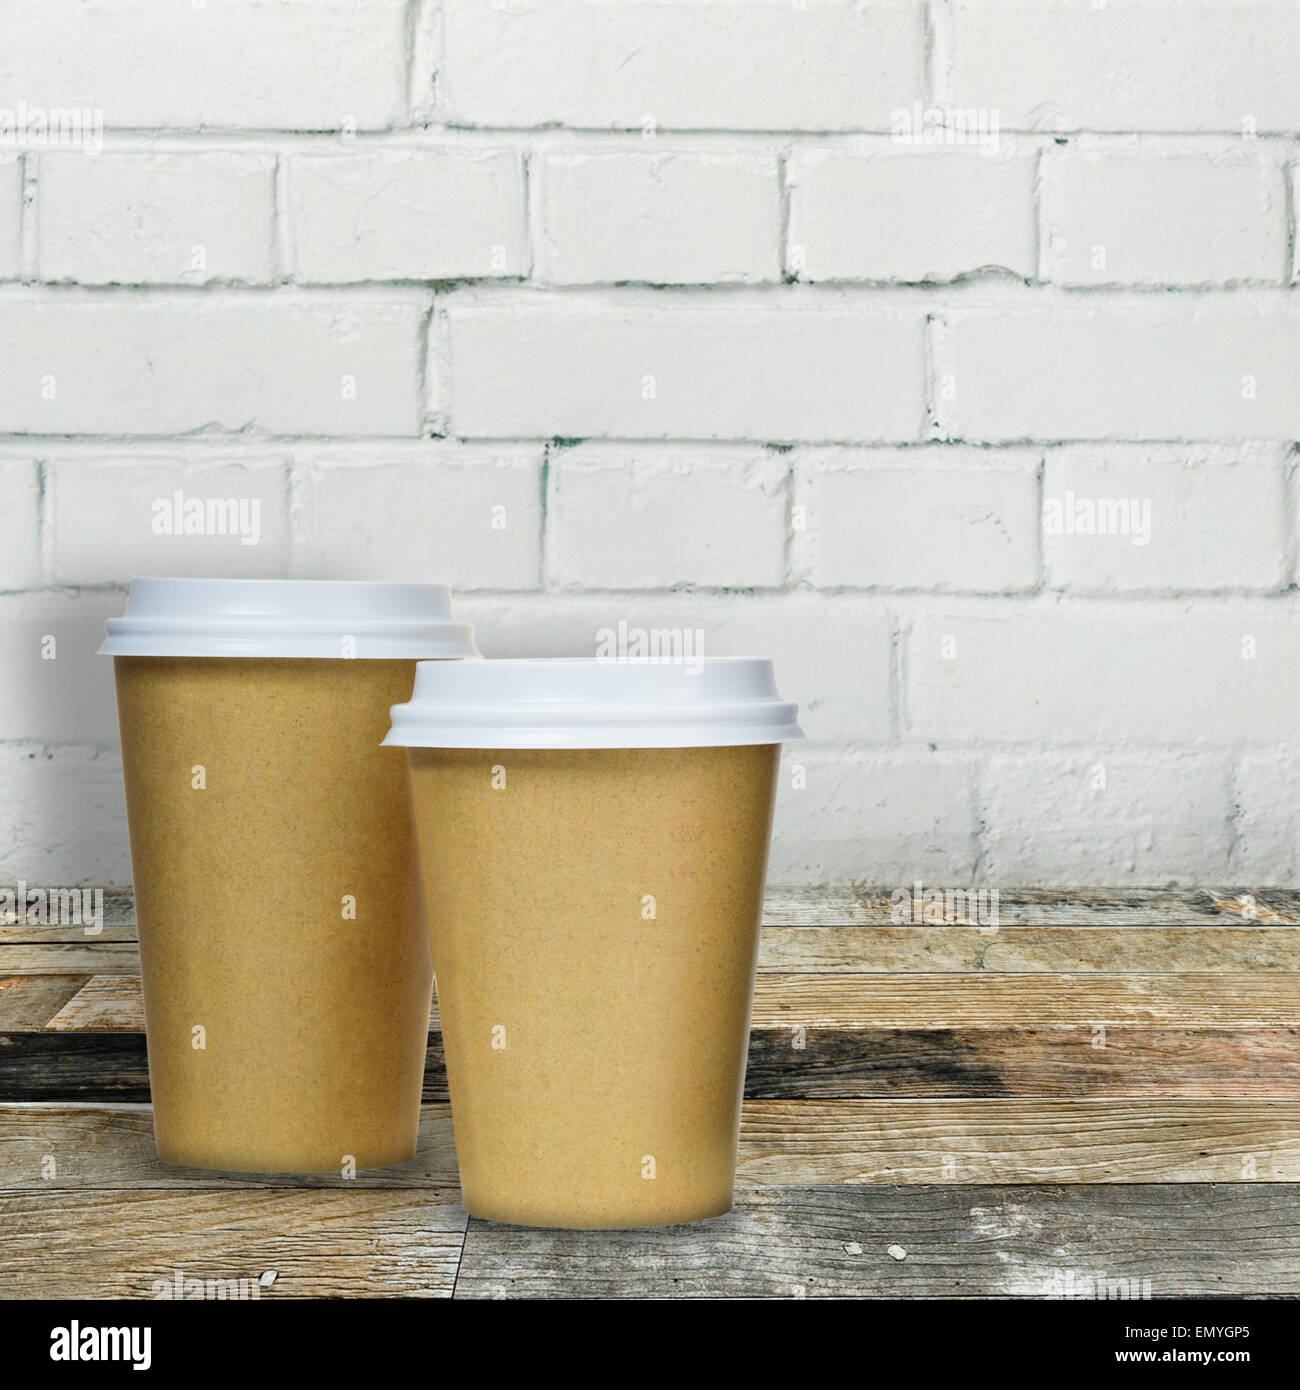 Takeaway coffee cups on wooden table against brick wall backgrou - Stock Image